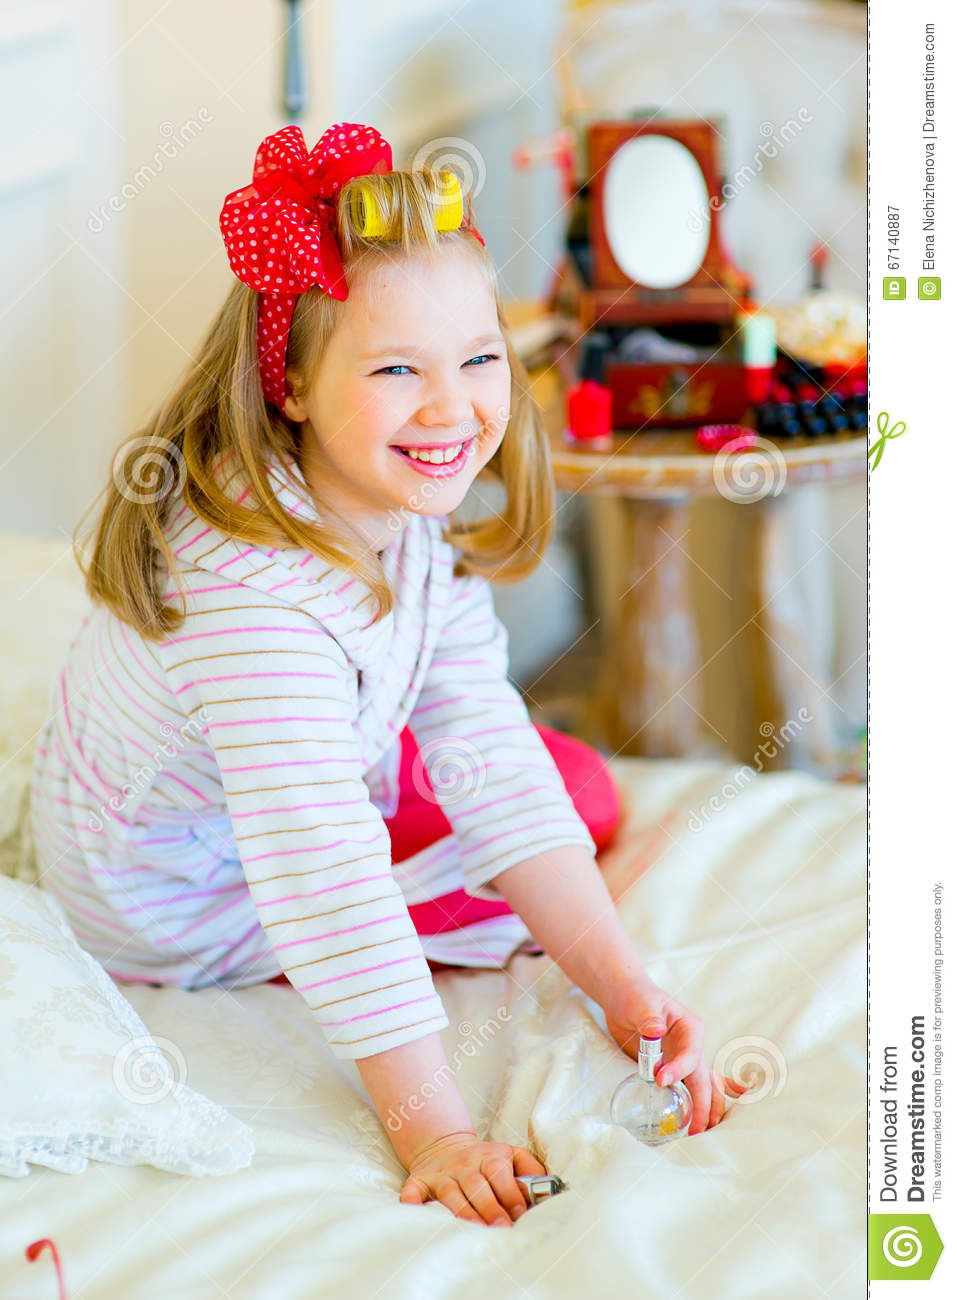 Pin on Little girl style and hair